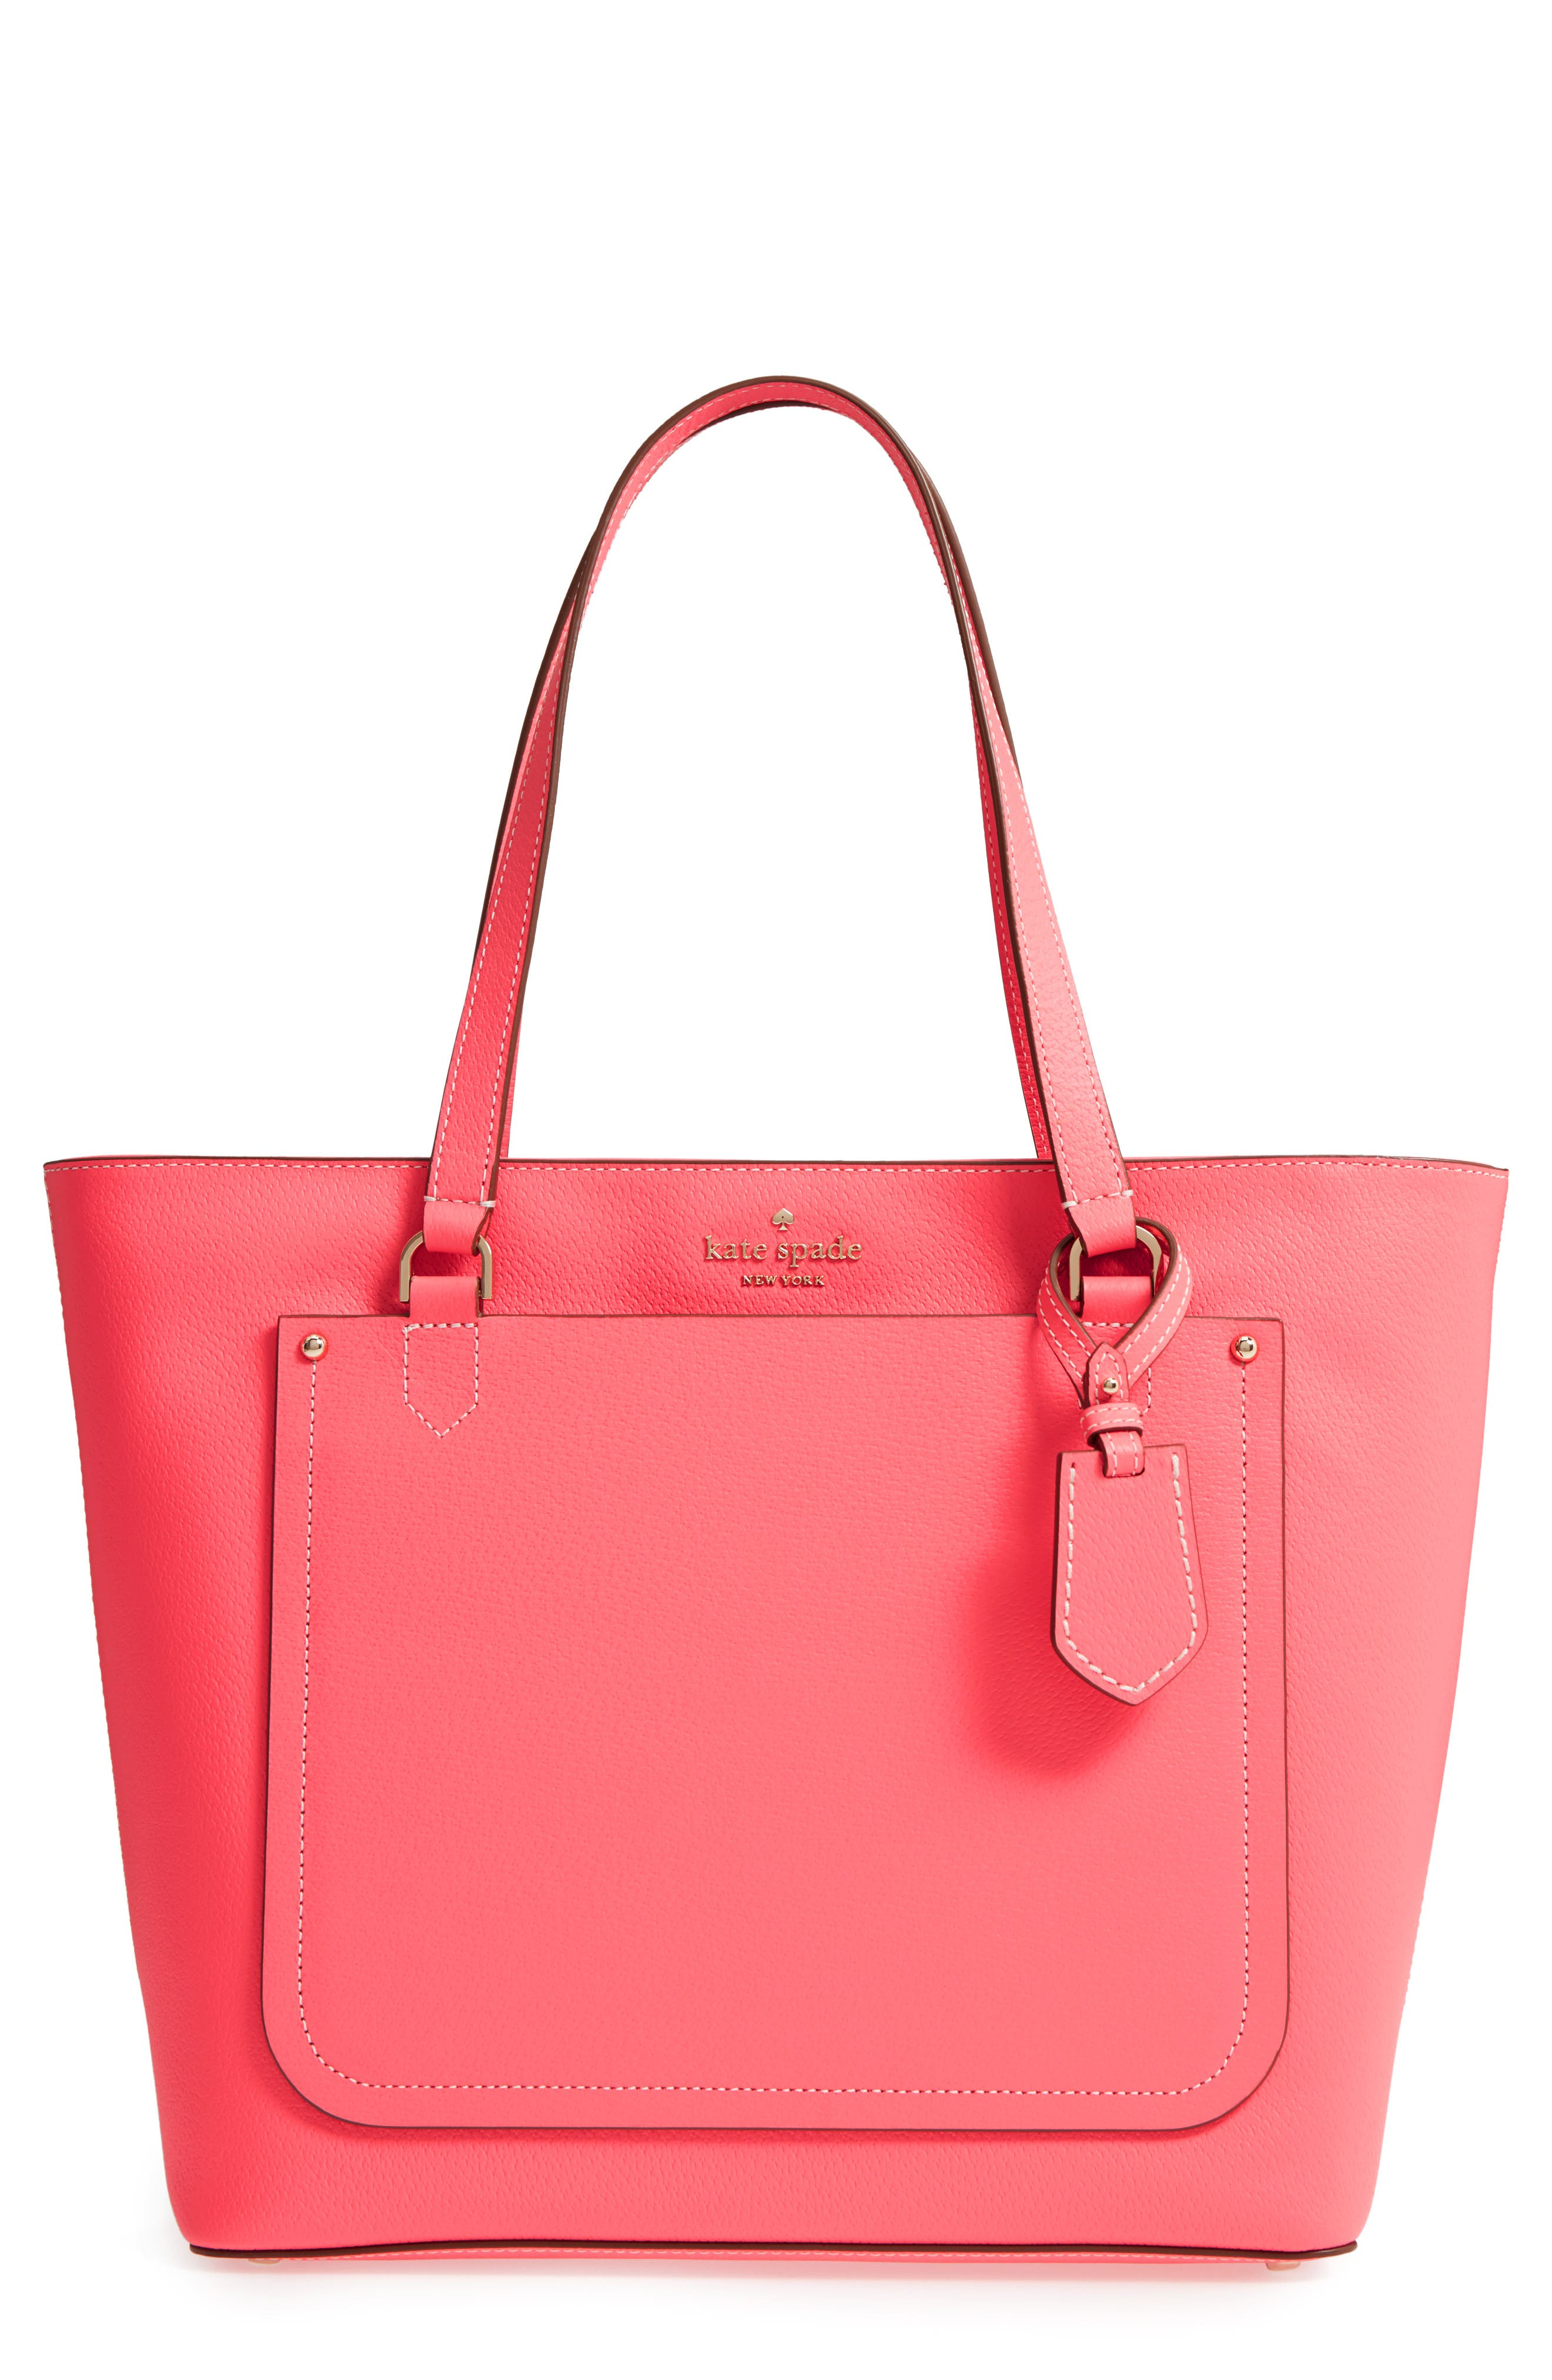 thompson street - kimberly leather tote,                         Main,                         color, BRIGHT FLAMINGO